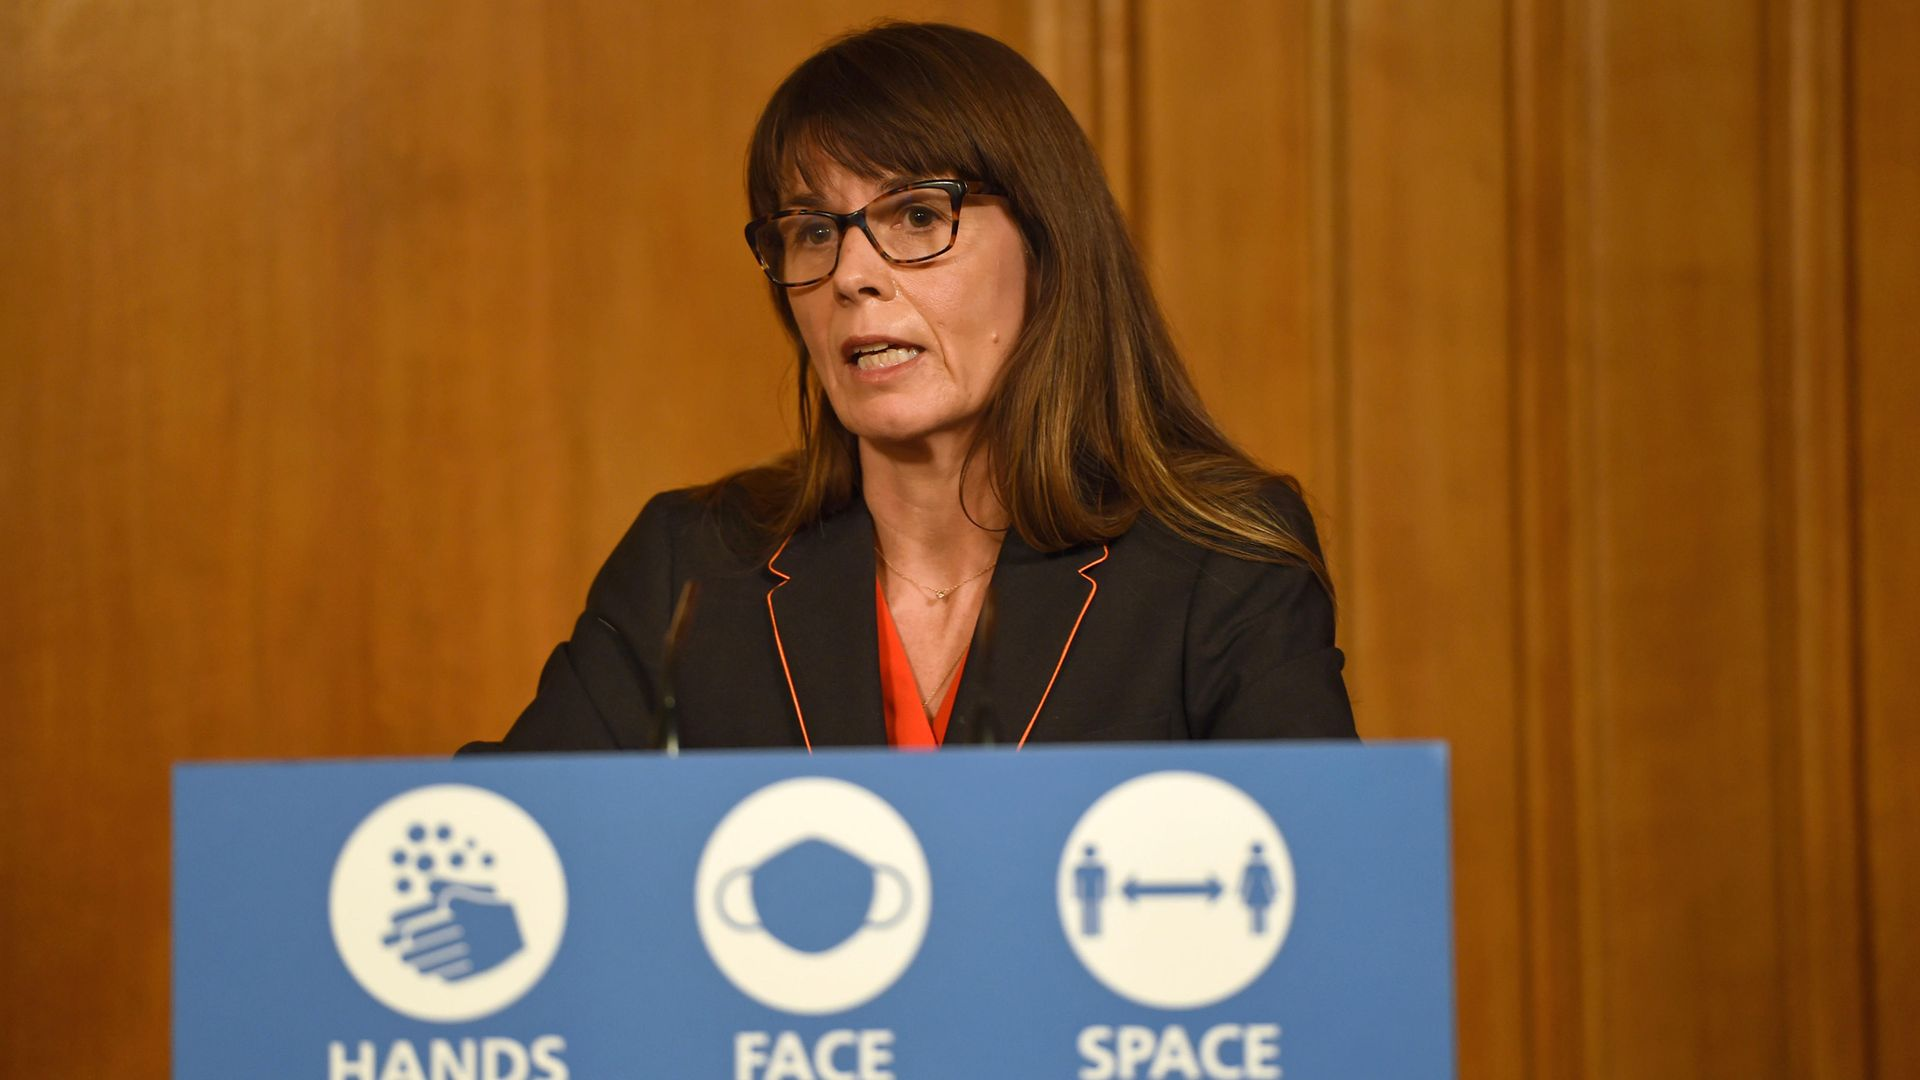 Dr Susan Hopkins during a media briefing in Downing Street, London, on coronavirus (COVID-19) - Credit: PA